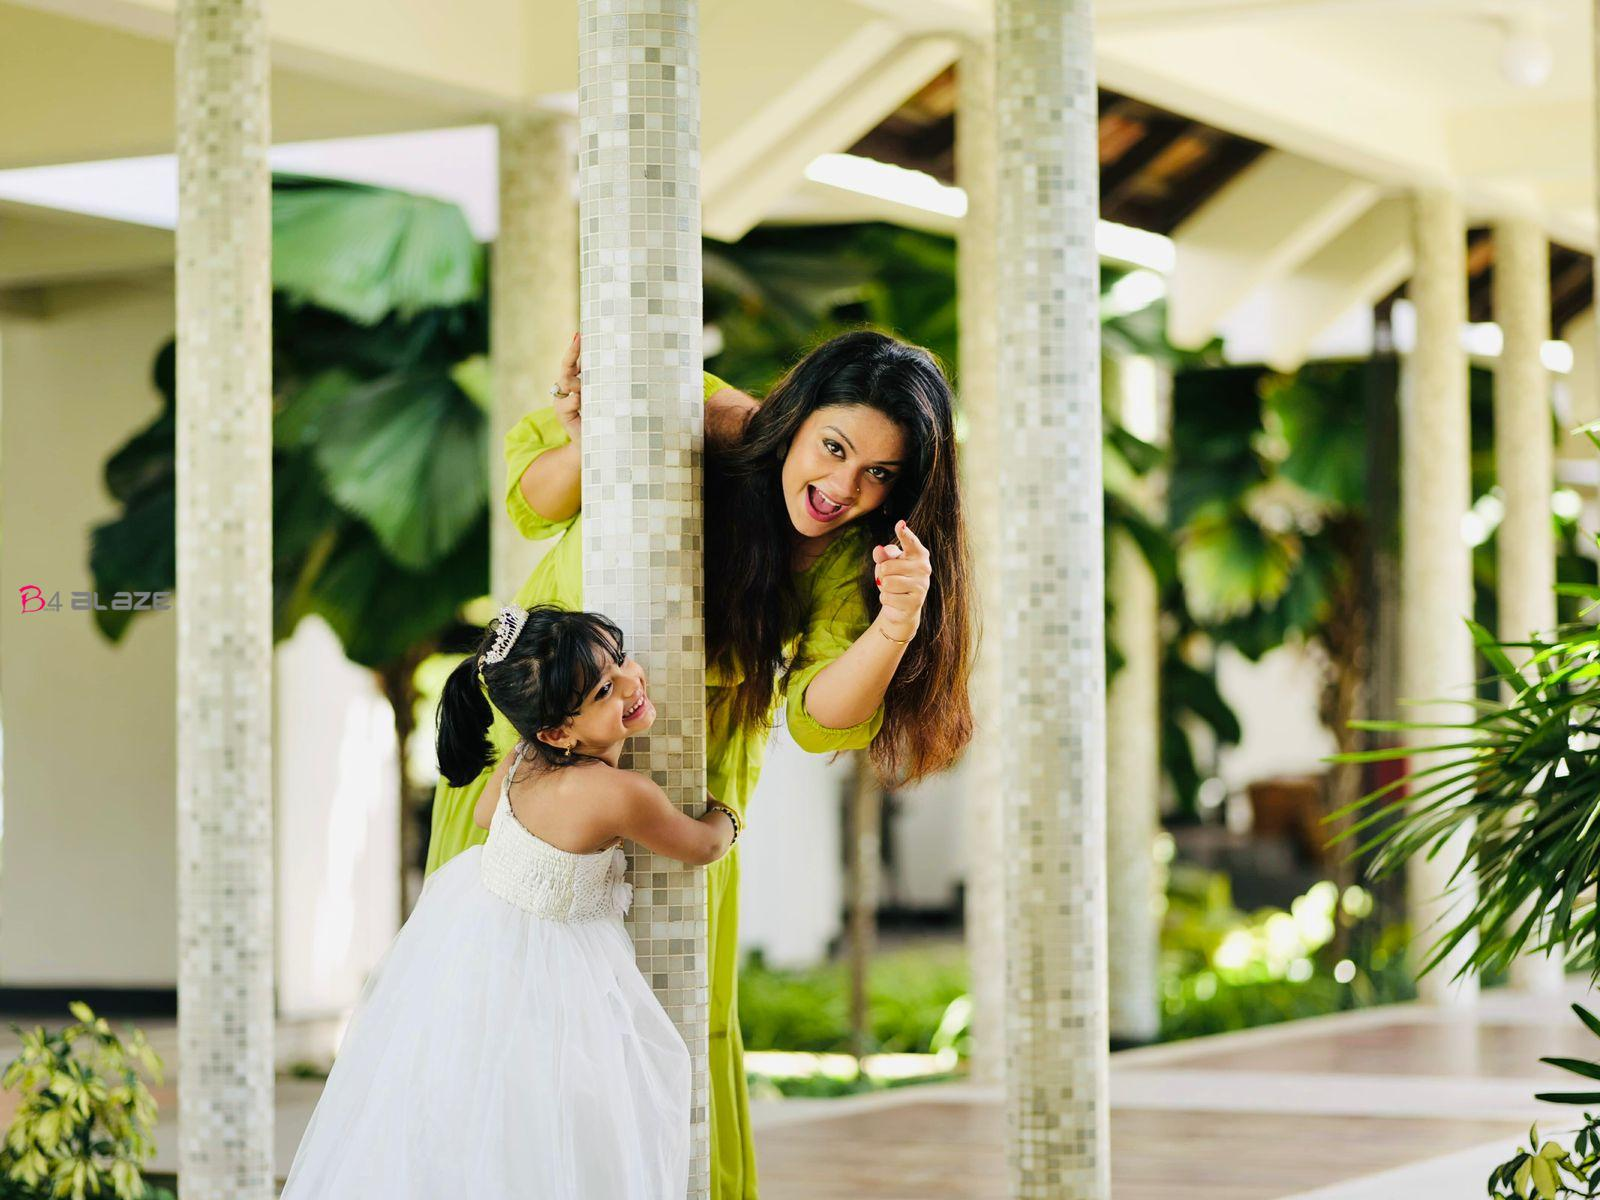 Shilpa Bala playing with her daughter